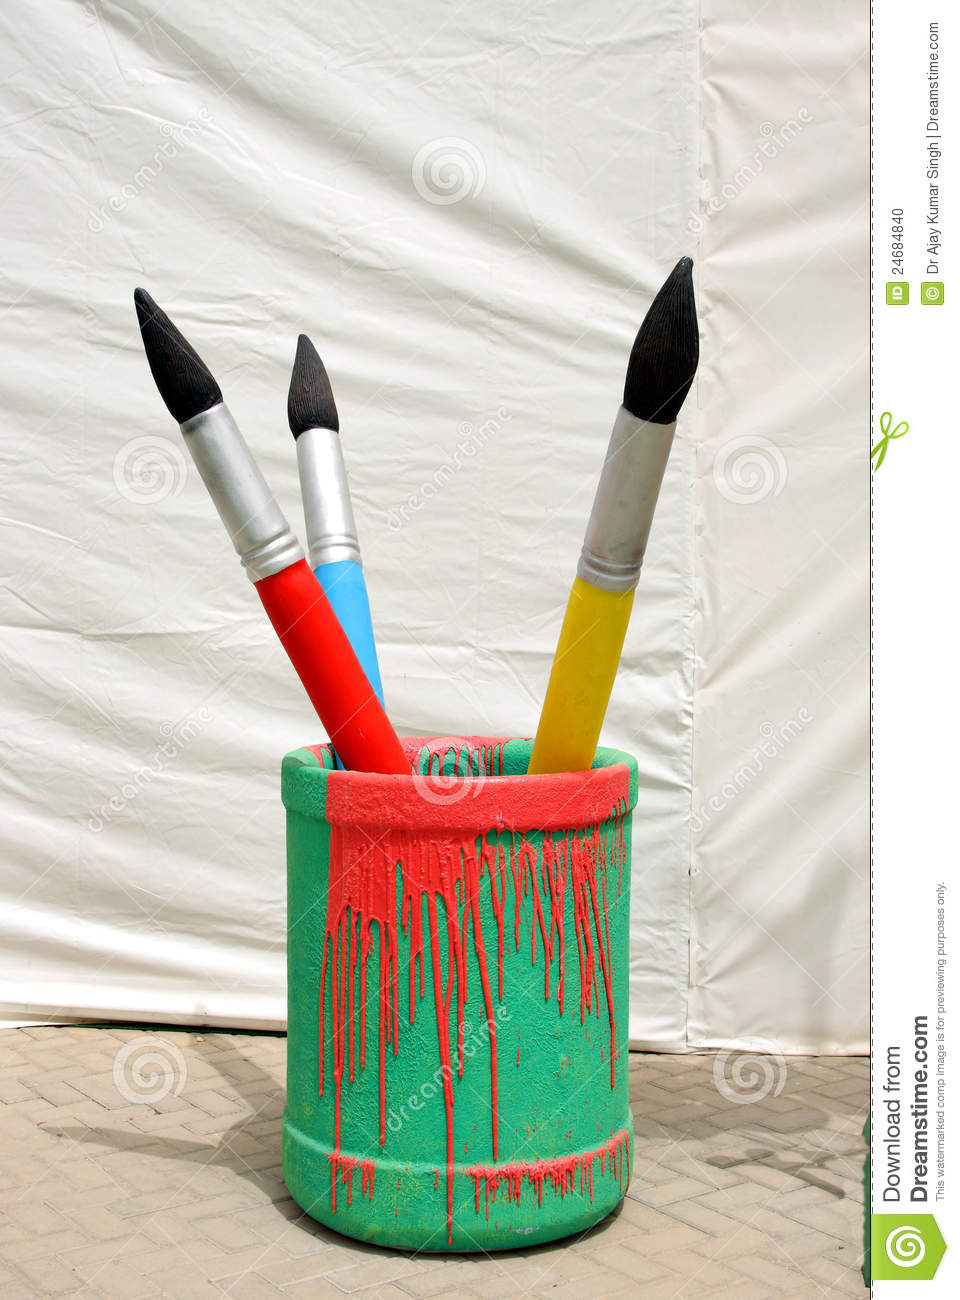 Paint Brush In A Container Stock Photo Image 24684840